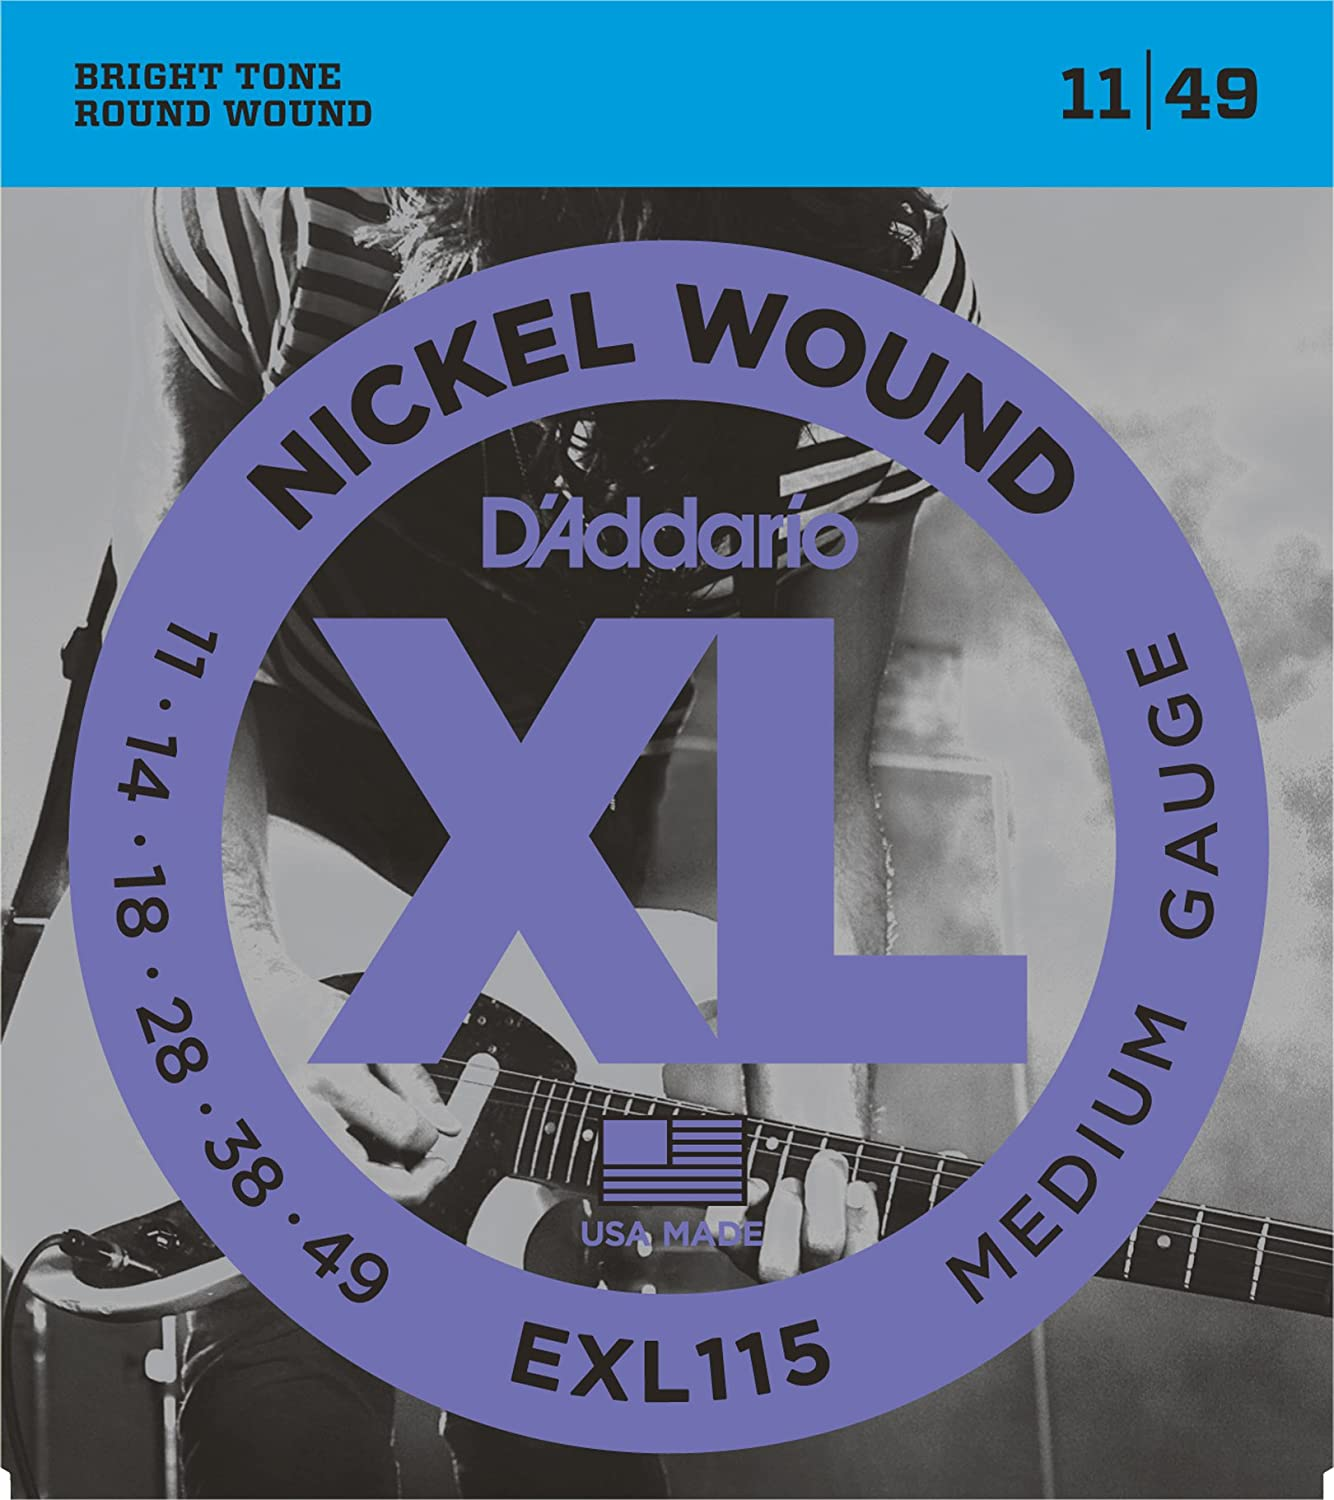 D'Addario EXL110-B25 Nickel Wound Electric Guitar Strings, Regular Light, 10-46, 25 Sets D'Addario